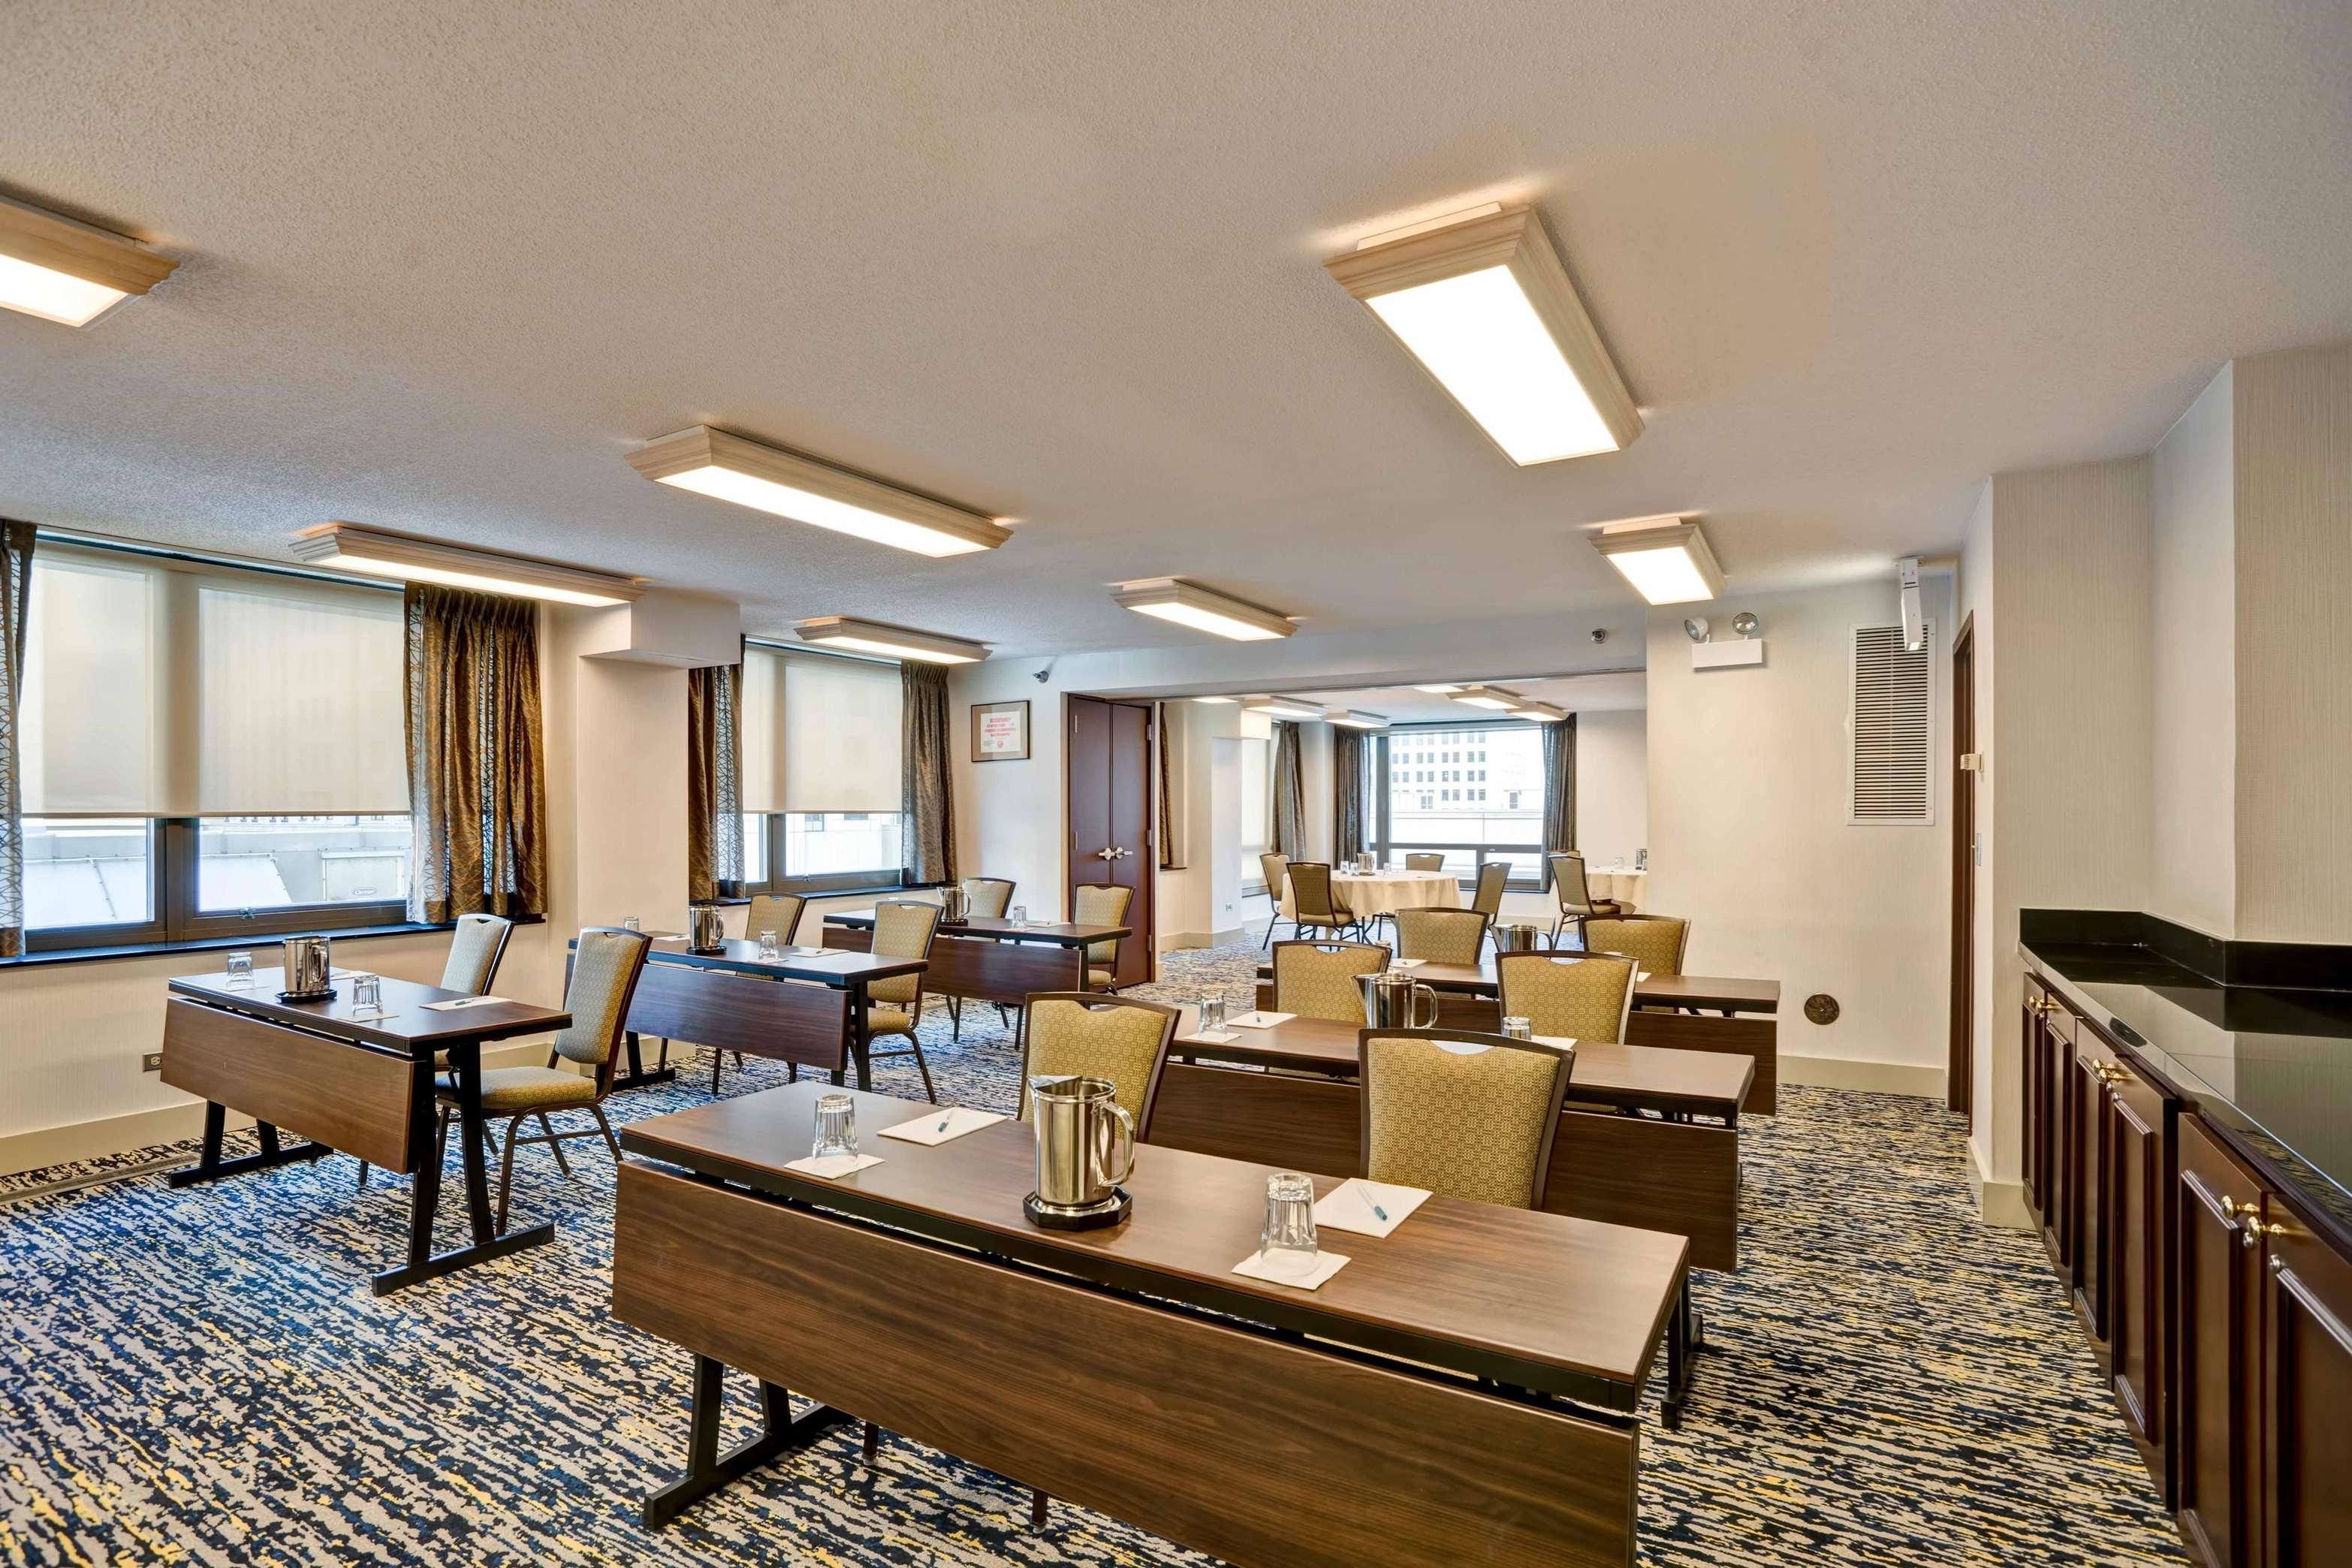 Homewood Suites by Hilton Chicago-Downtown image 39